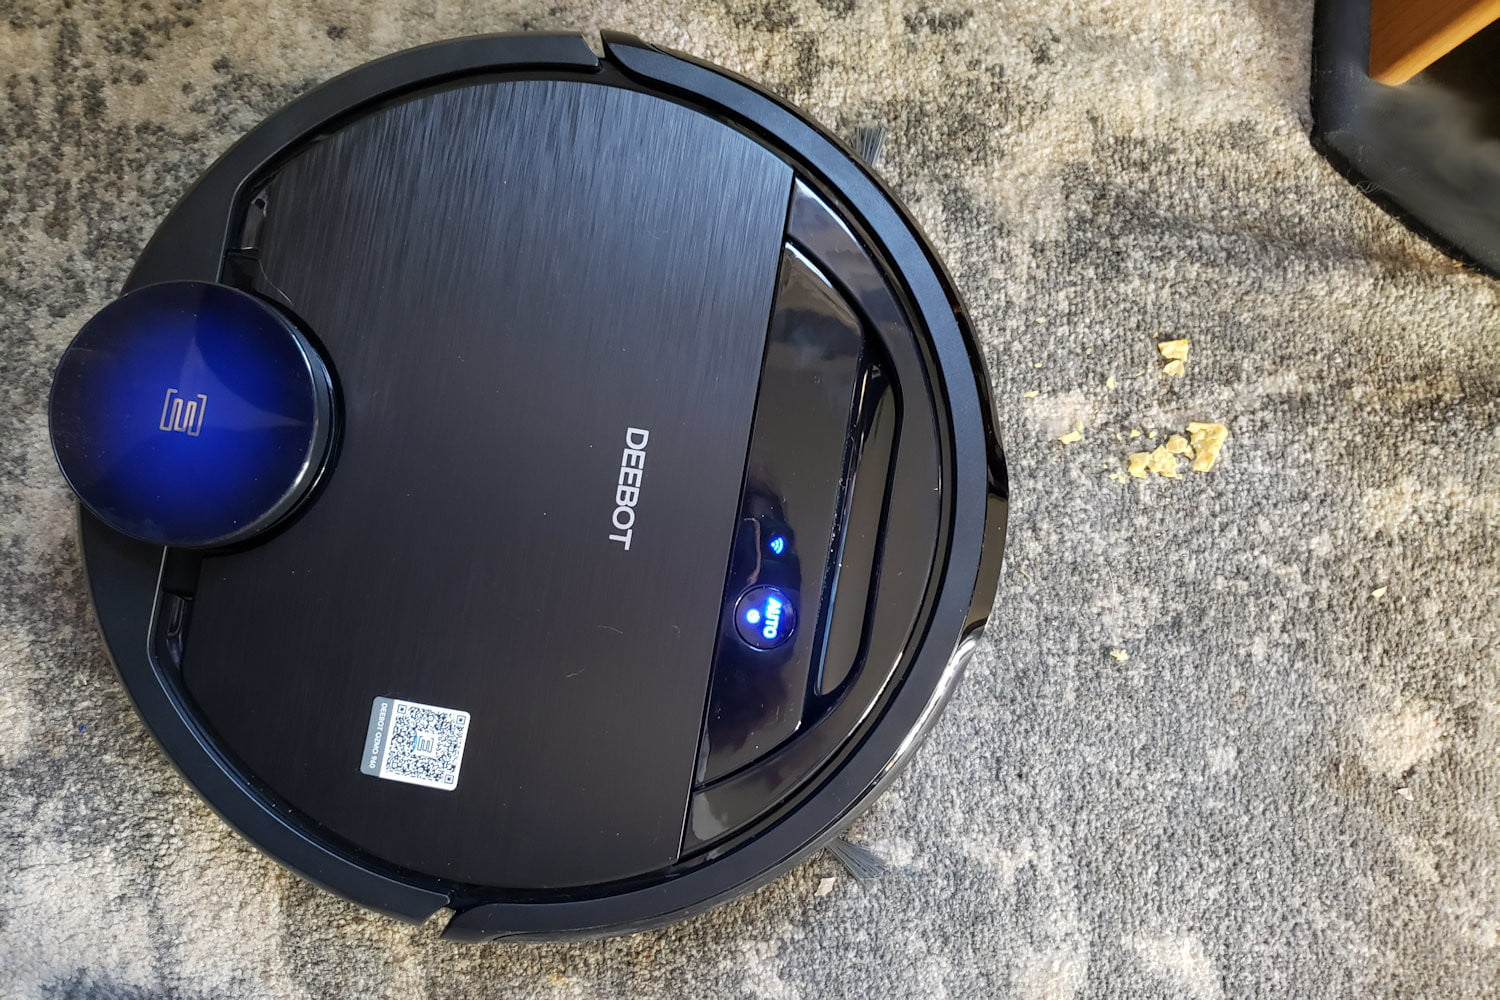 Ecovacs Deebot 960 Review: Wasted potential